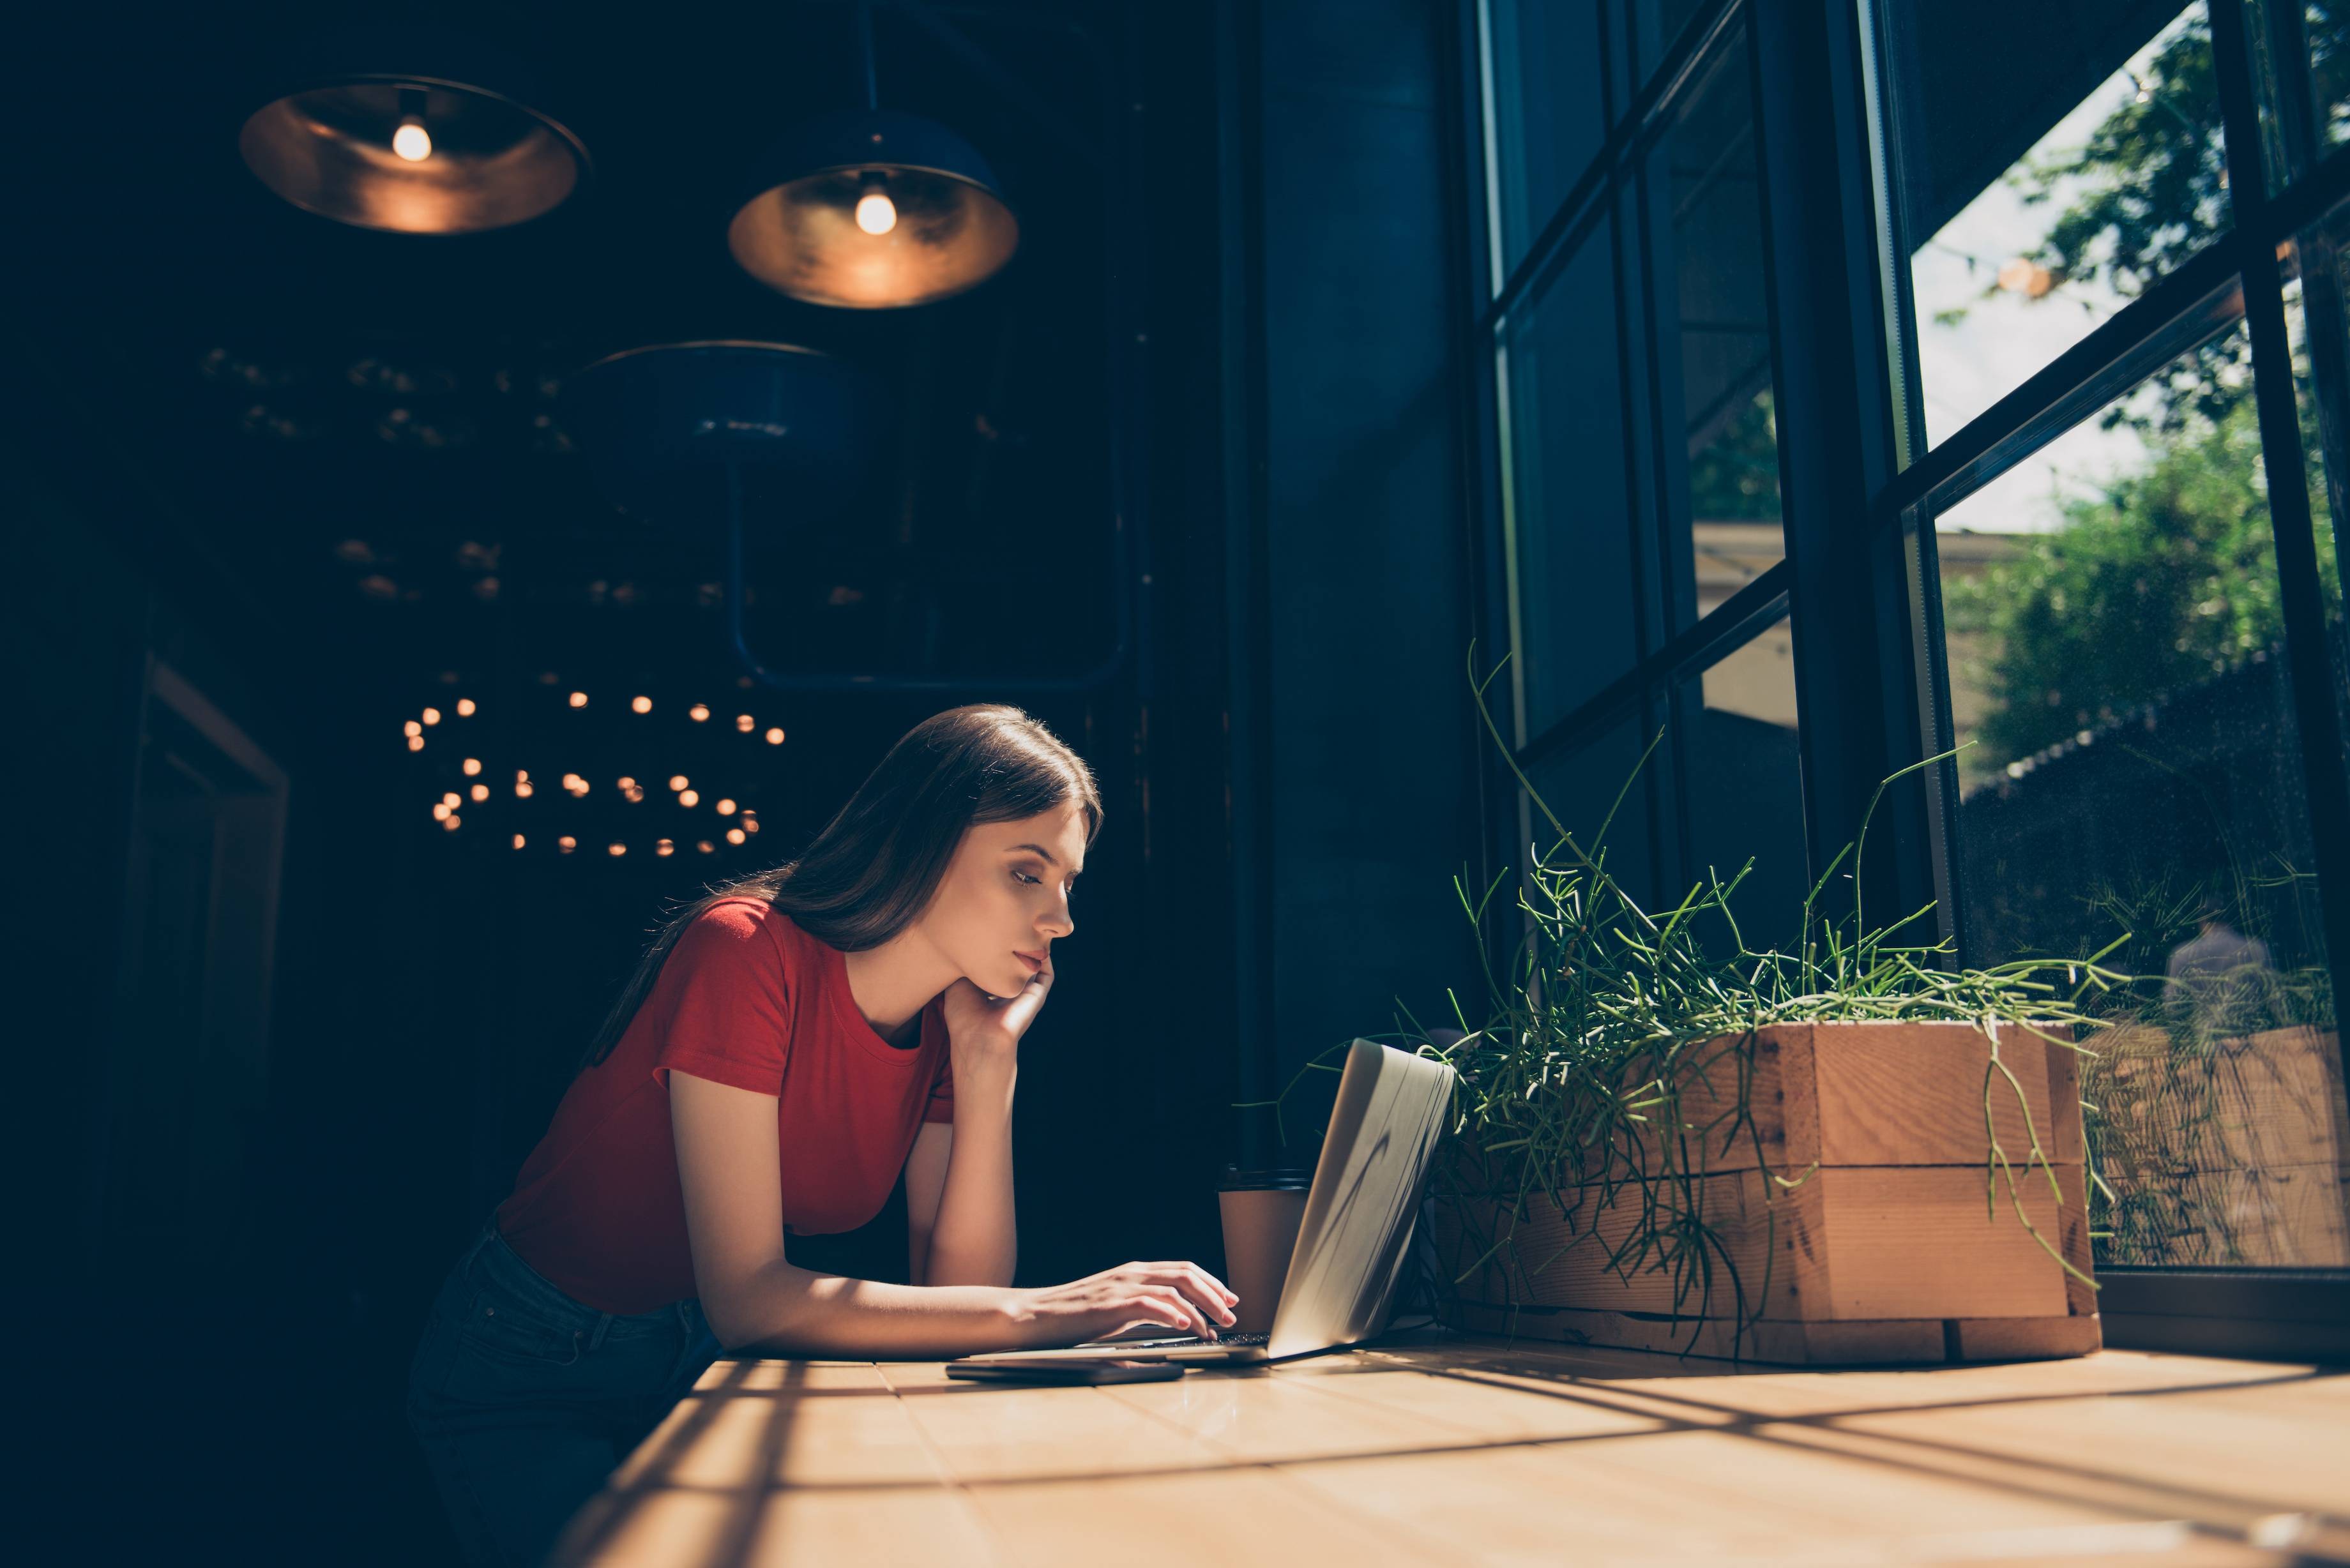 Common Questions Answered For Those New To Coworking Common Questions Answered For Those New To Coworking | 580 Executive Center